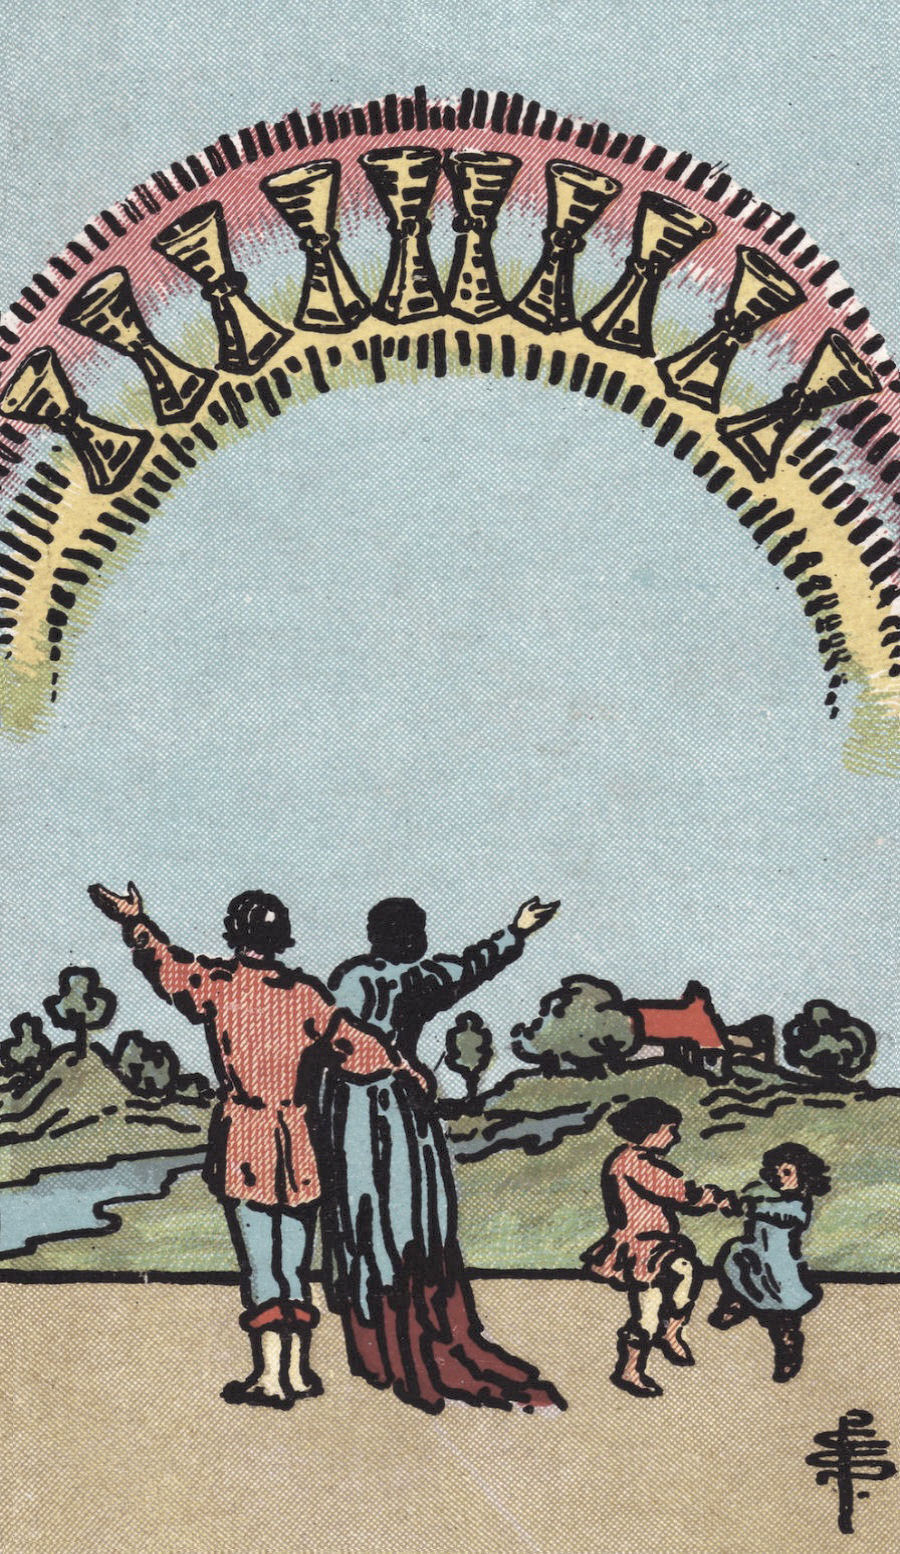 The Ten of Cups could reflect that happy family eating pizza in the food court